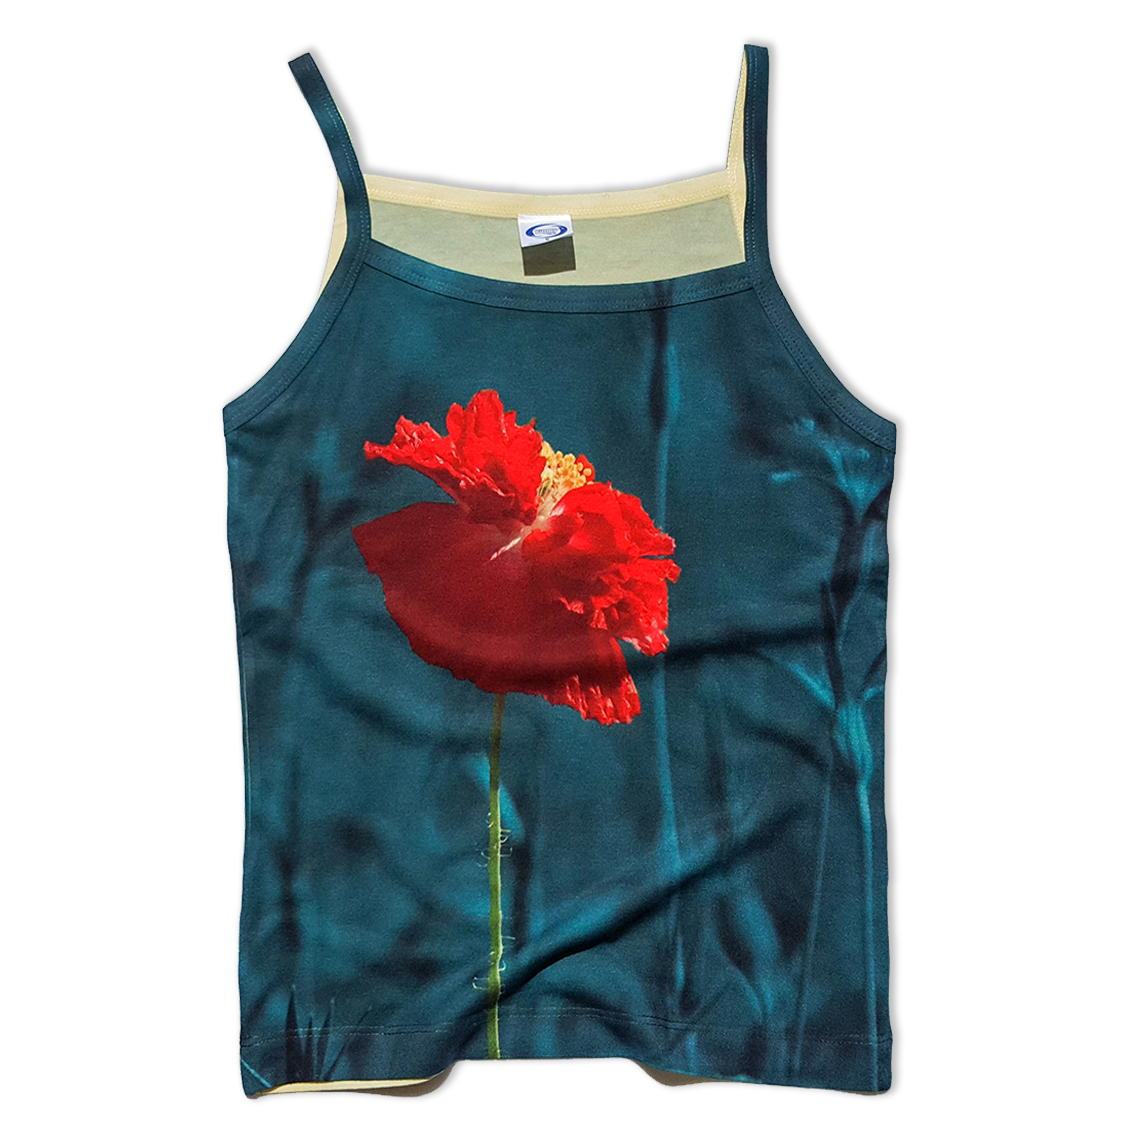 Poppy all over printed tank top